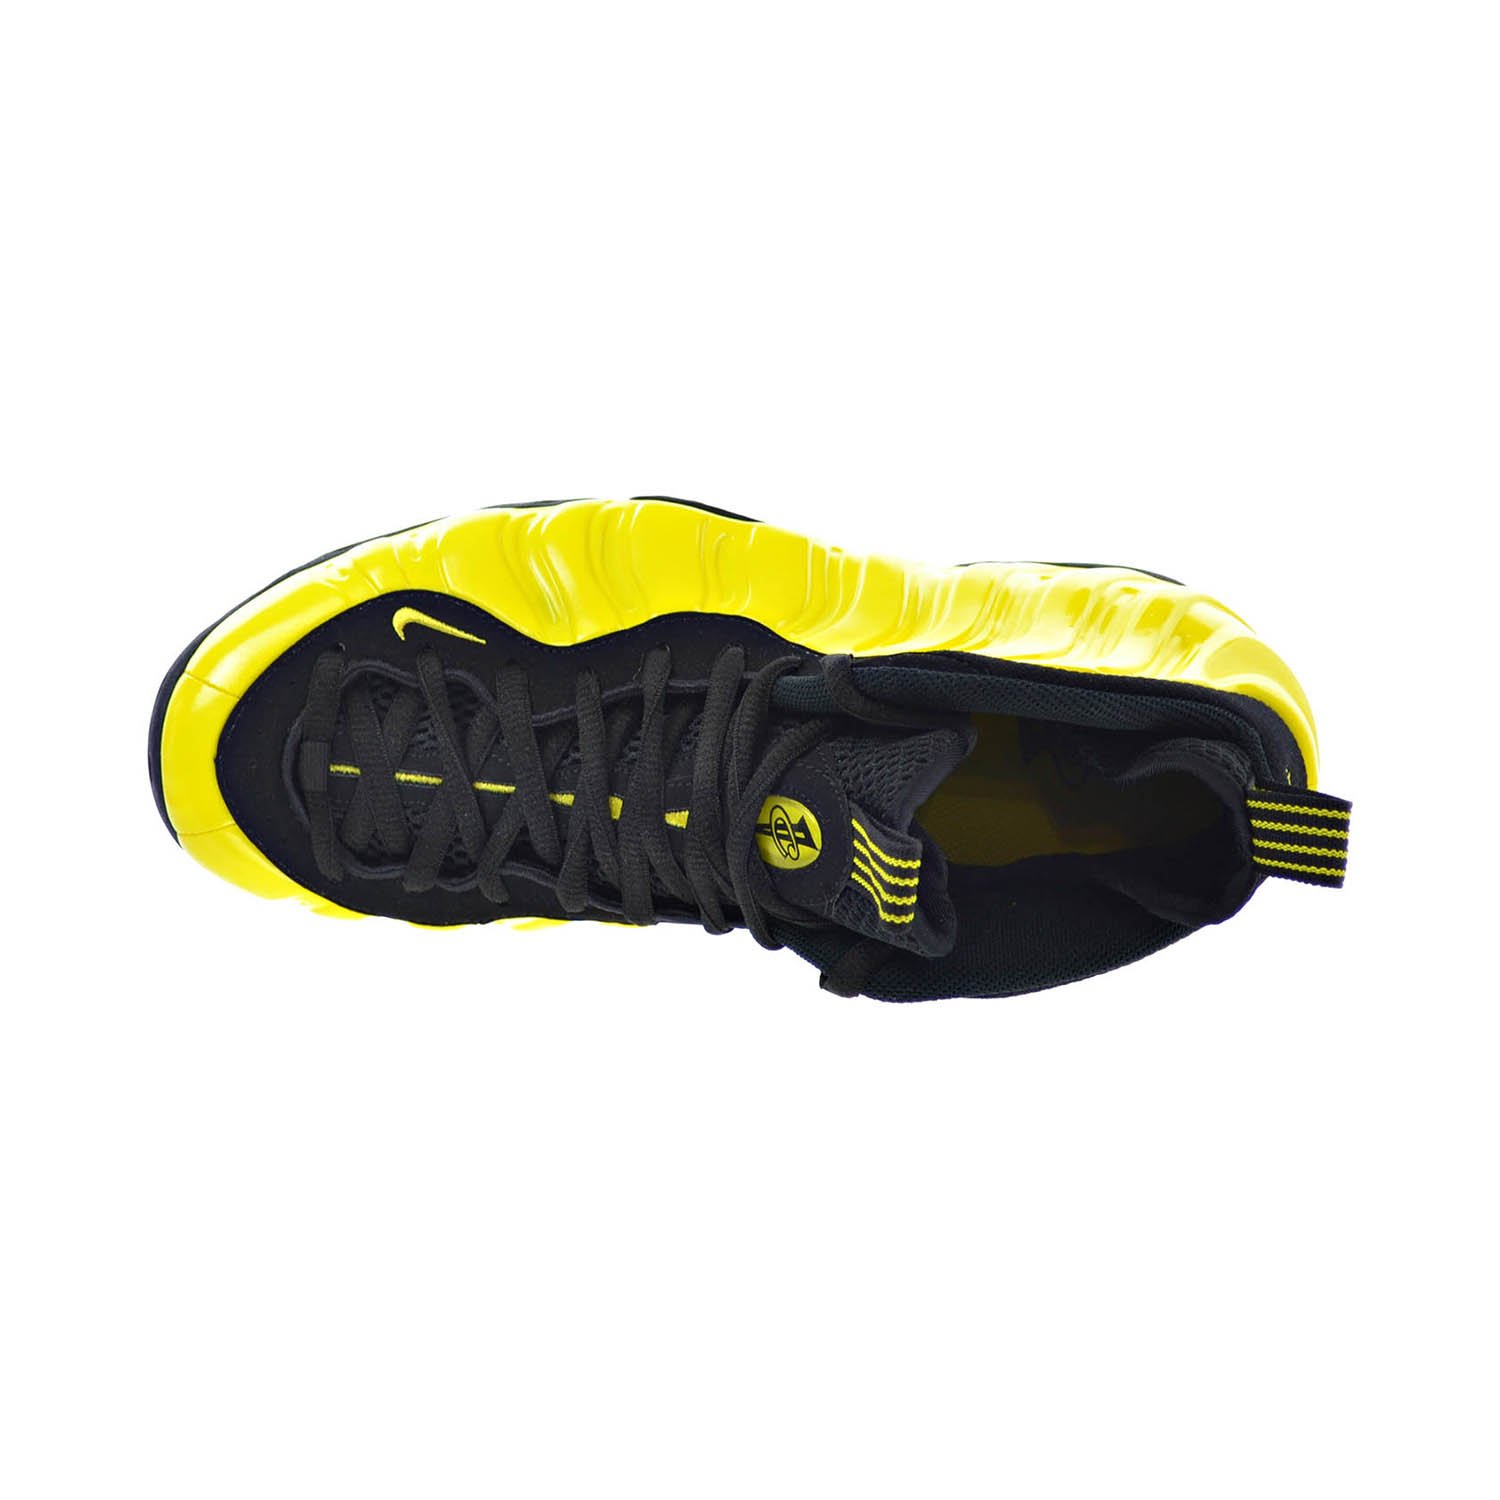 the latest 8ea8a 2b1f1 Amazon.com   Nike Air Foamposite One Wu-Tang Men s Shoes Optic Yellow Black  314996-701   Basketball